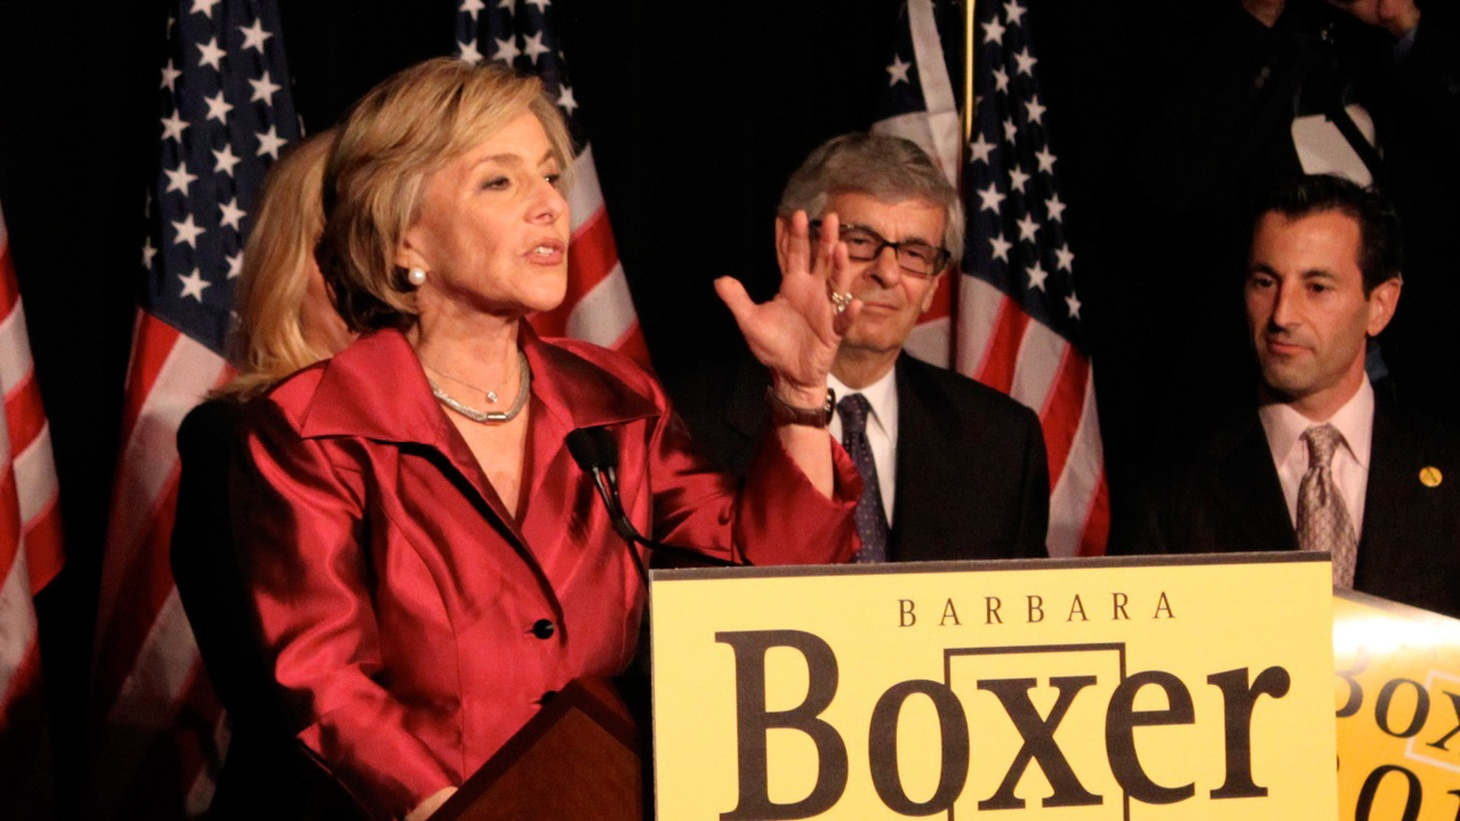 With 34 candidates running to fill Barbara Boxer's Senate seat, will the crowded field cause too much confusion for voters? Also, an update on South L.A.'s tiny houses for the homeless.